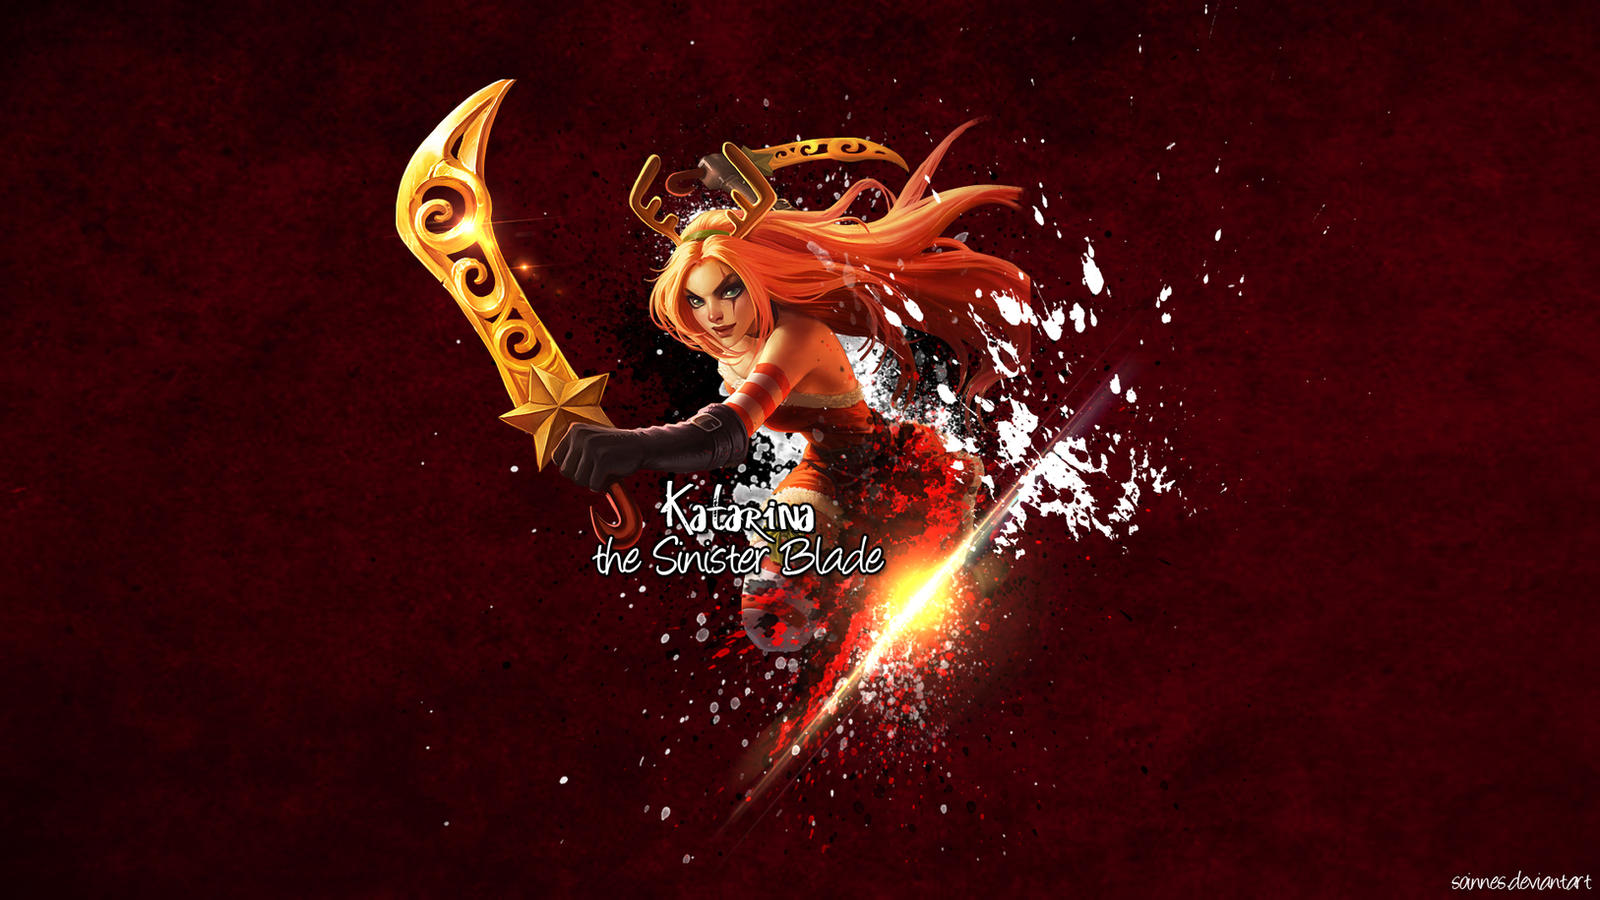 League Of Legends Katarina Wallpaper By Soinnes On Deviantart